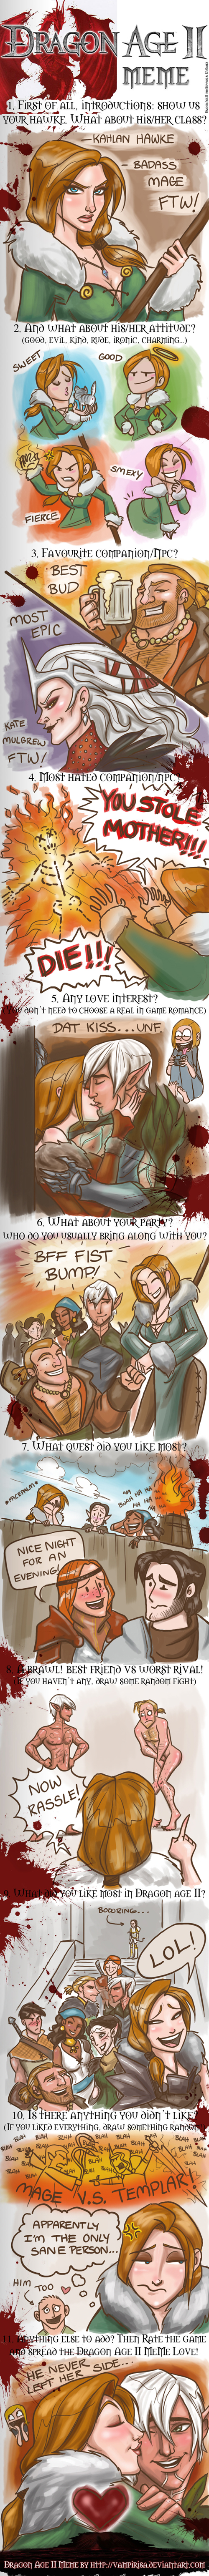 Dragon Age II Meme by WendyDoodles